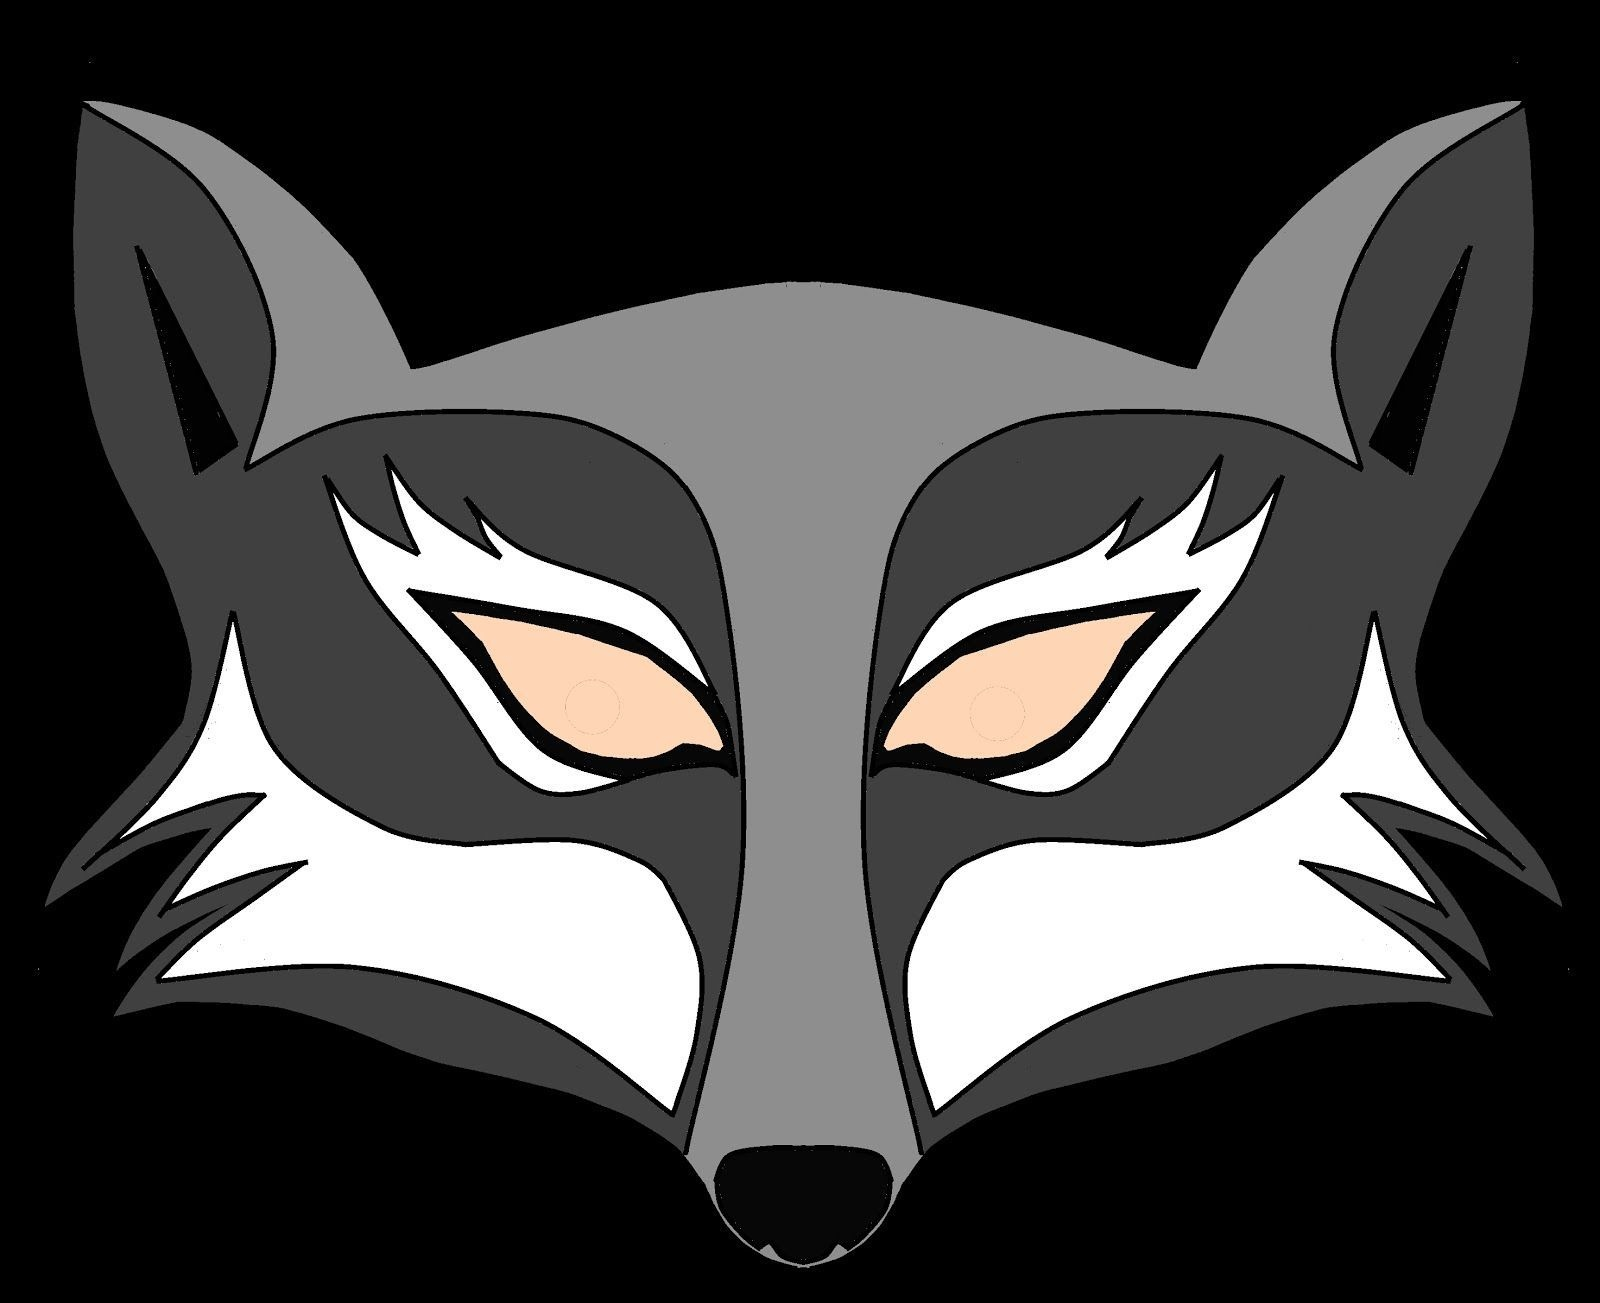 Wolf Mask Template Printable. Wolf Pattern Printable Wolf Mask - Free Printable Wolf Face Mask